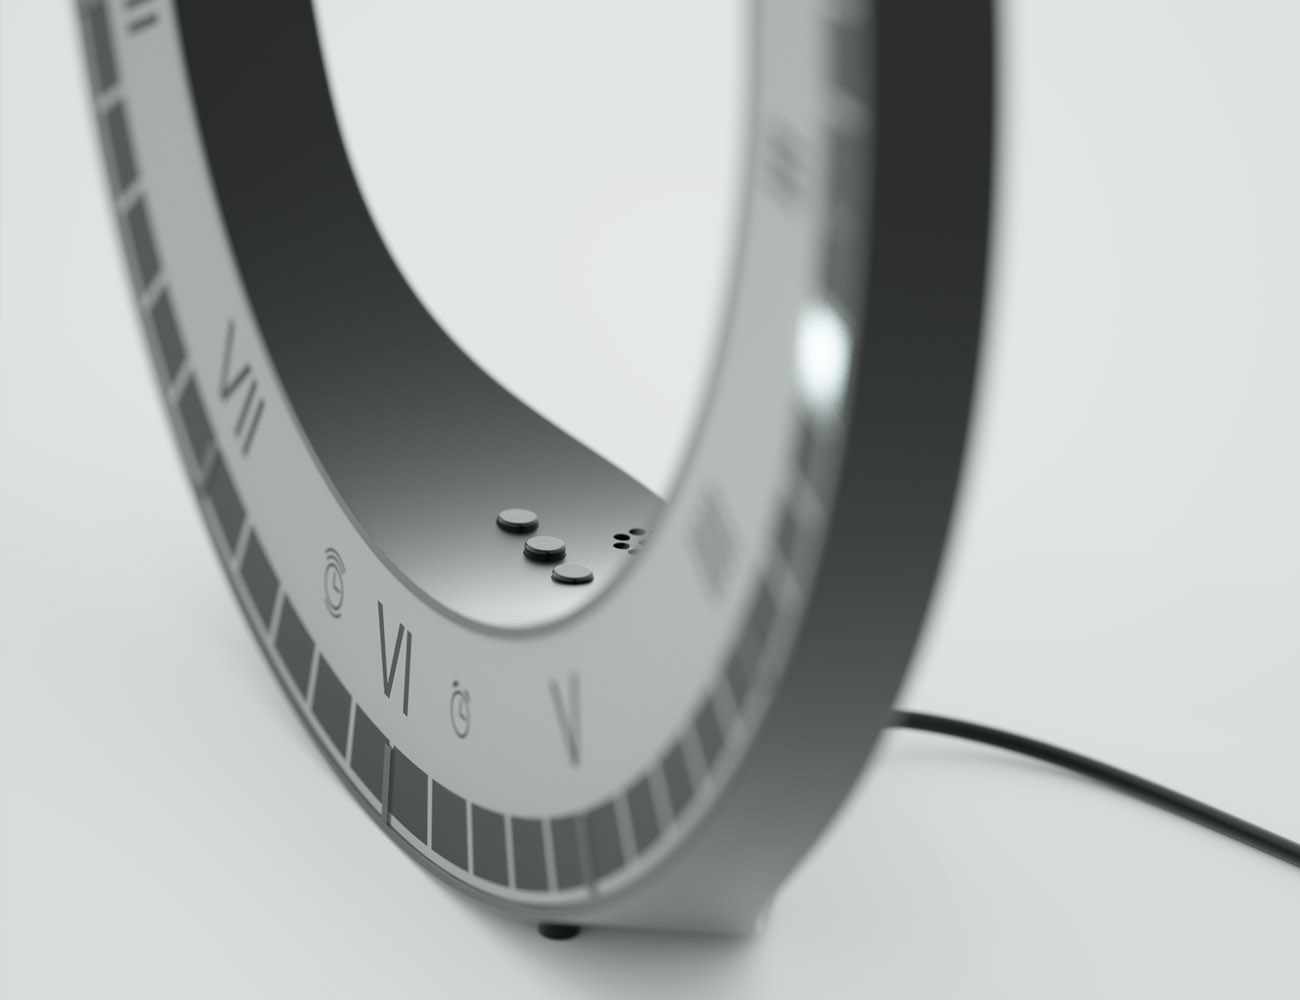 The Only Clock Digital LED Clock